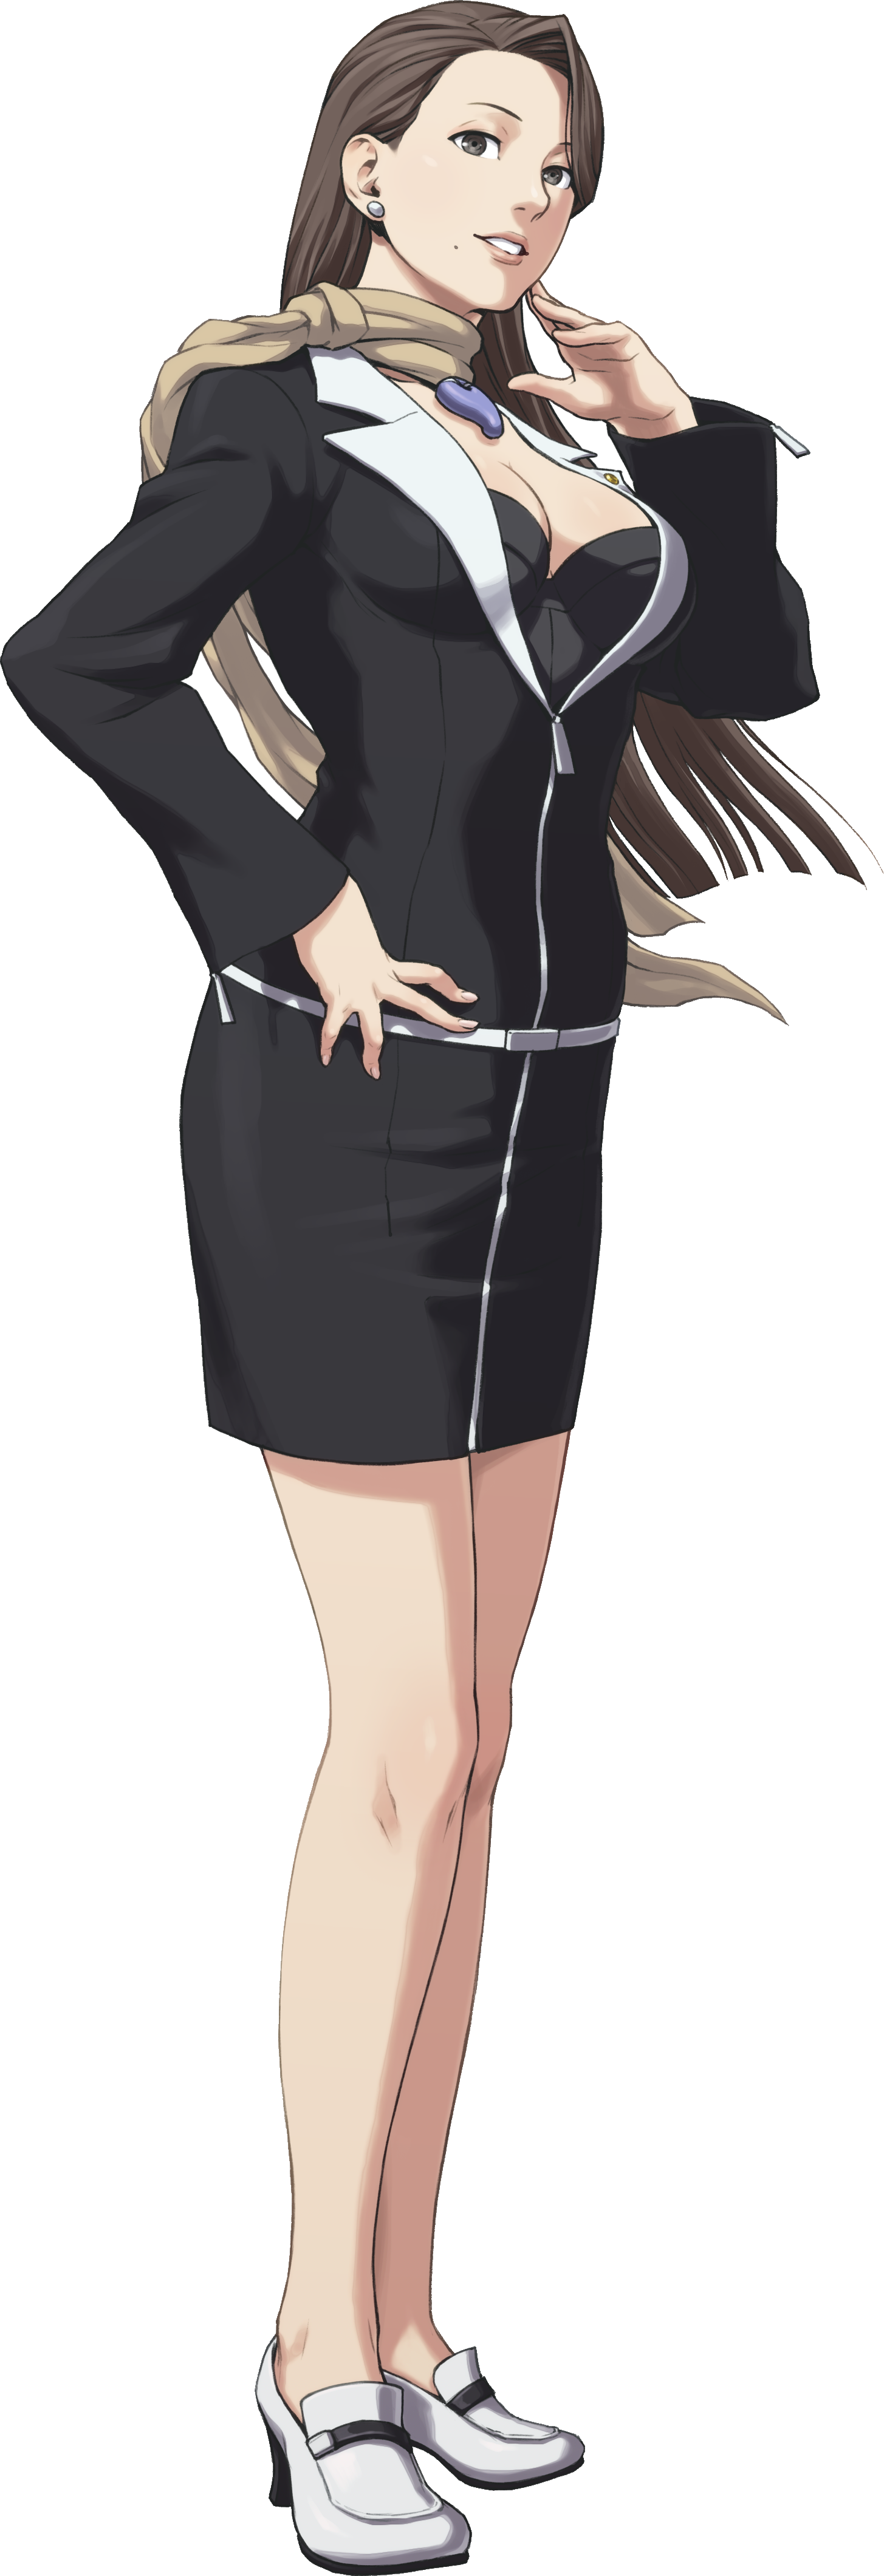 Mia 3 Phoenix Wright Ace Female Characters A very hot big boobie booty defence attorney who is also dead mia is gone. mia 3 phoenix wright ace female